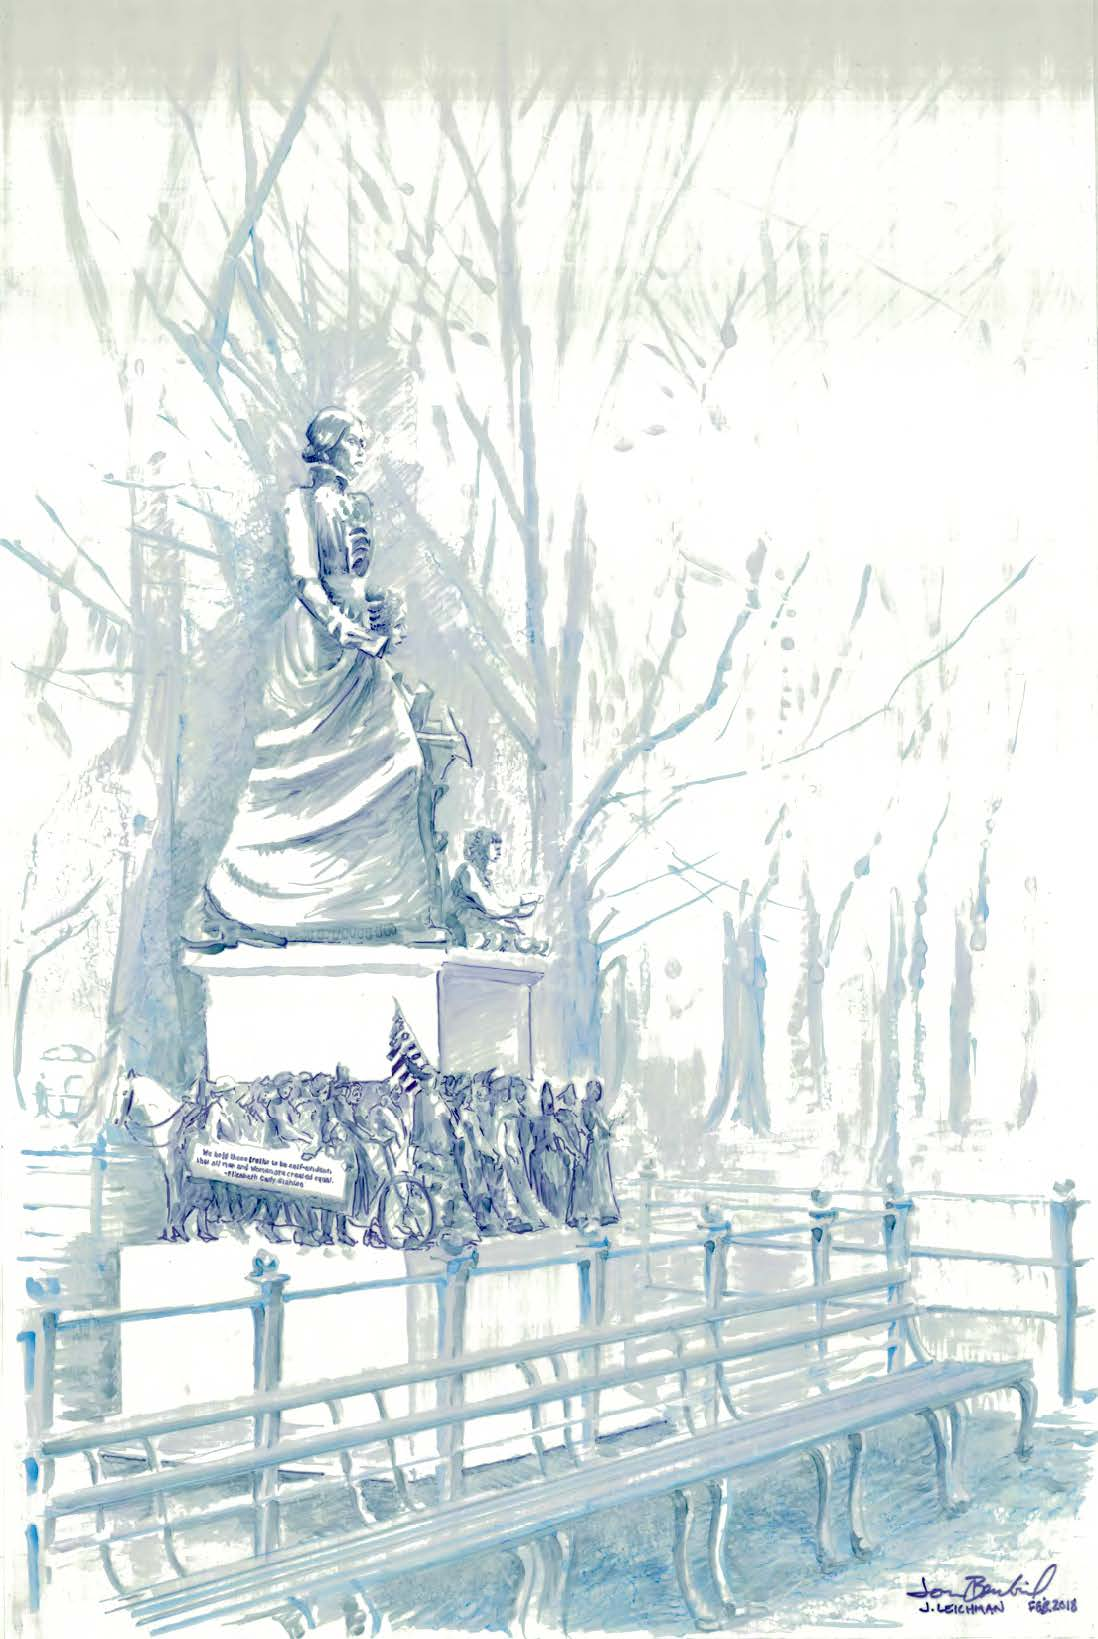 Benefiel_J_MonumentConcept_screenview_Page_03_Image_0001.jpg